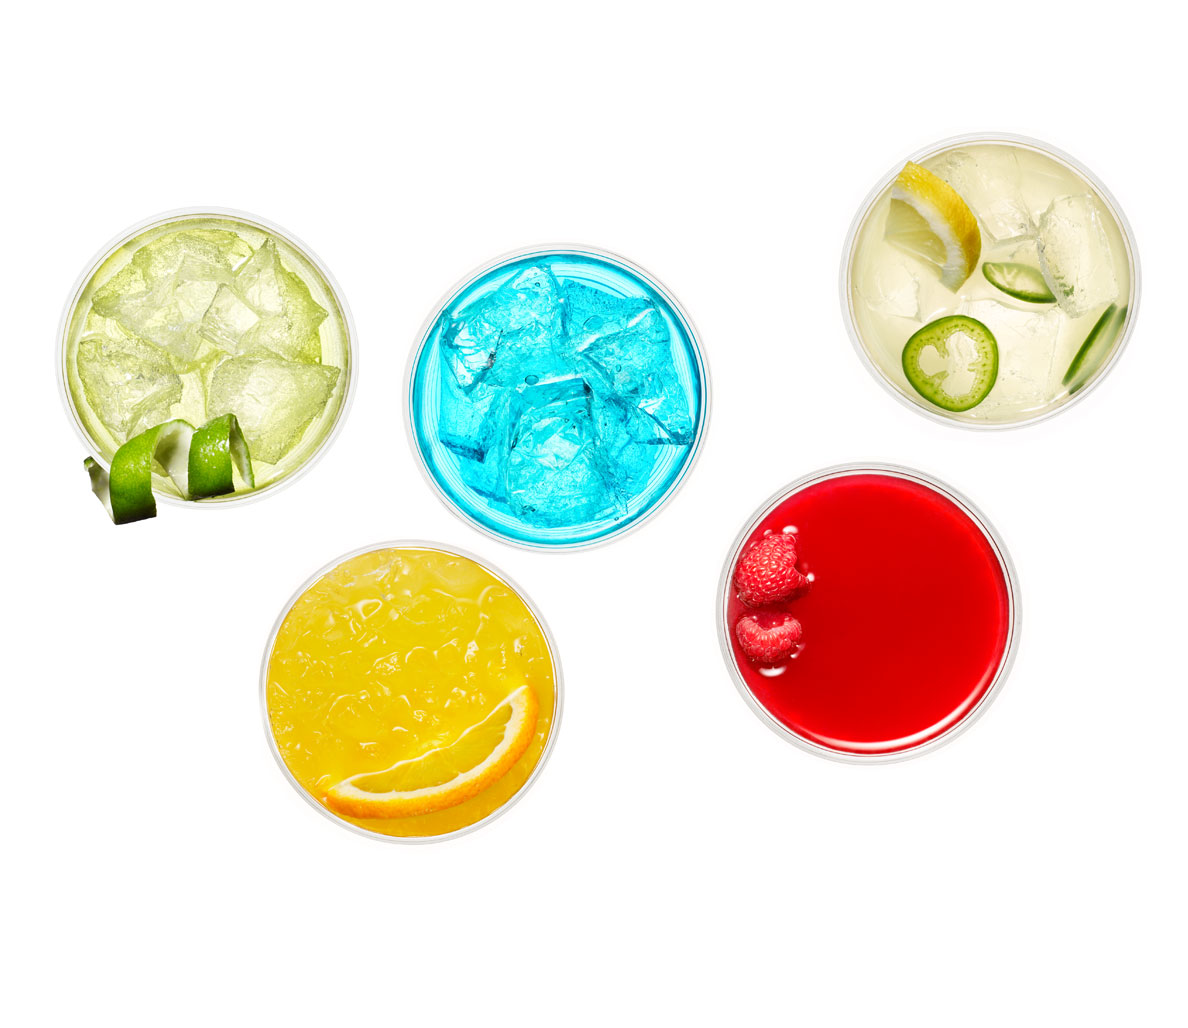 5 Abs-friendly Cocktails With 150 Calories or Less